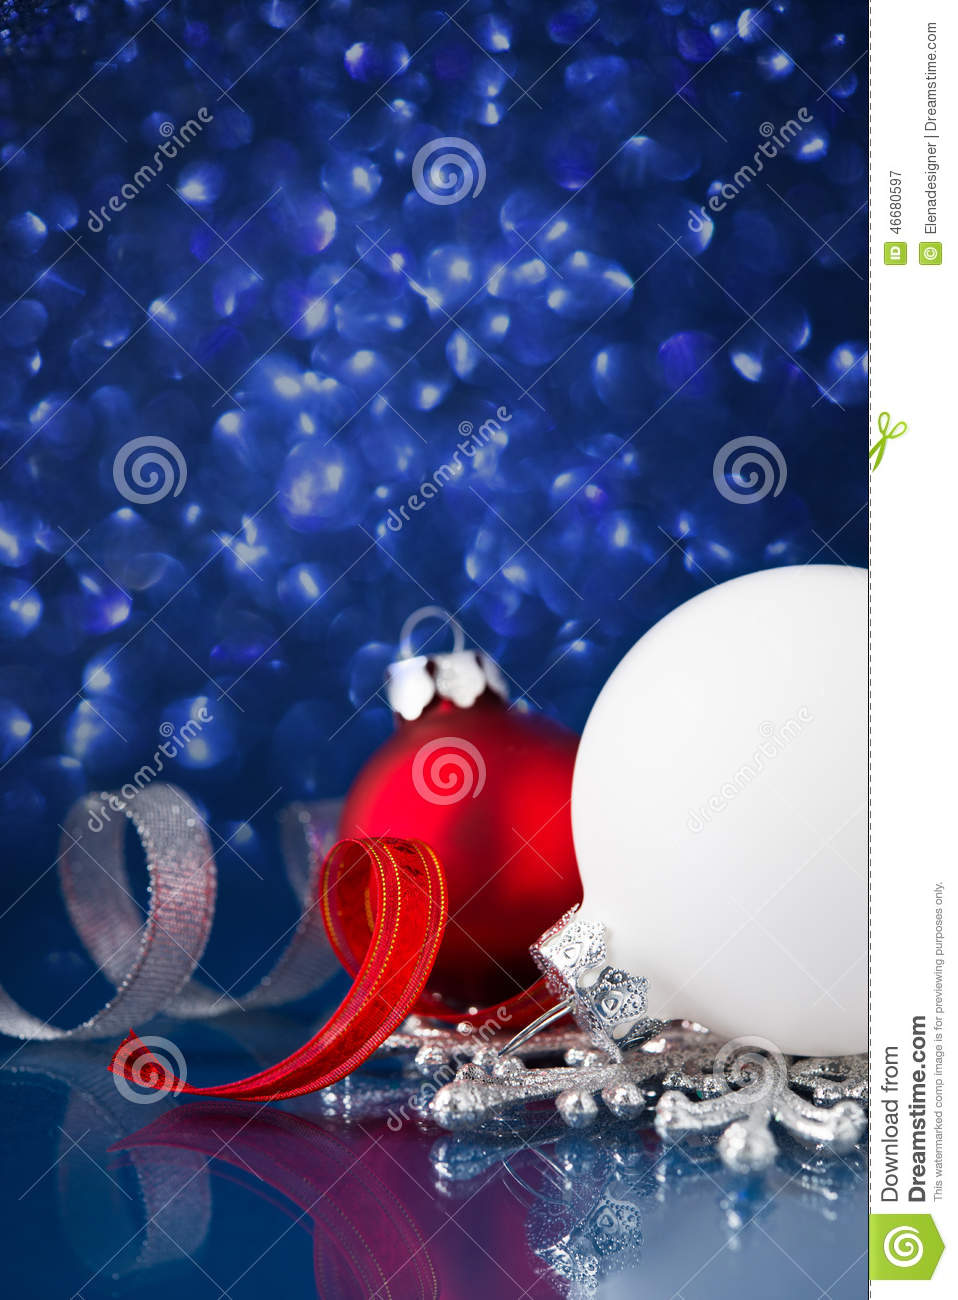 White silver and red christmas ornaments on dark blue